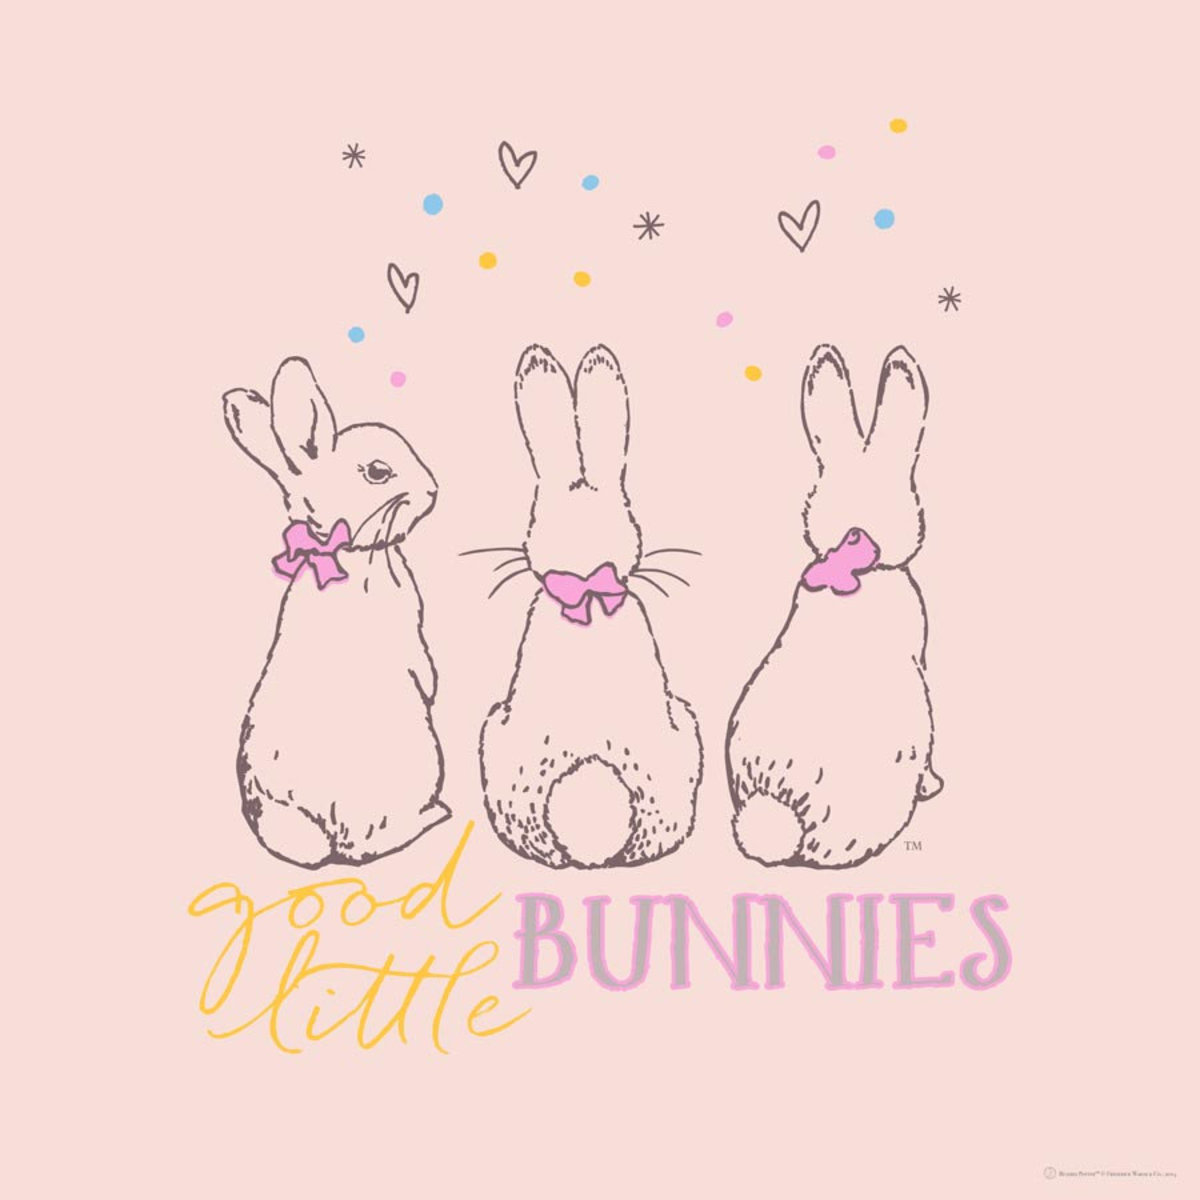 Image for Good Little Bunnies - Pink